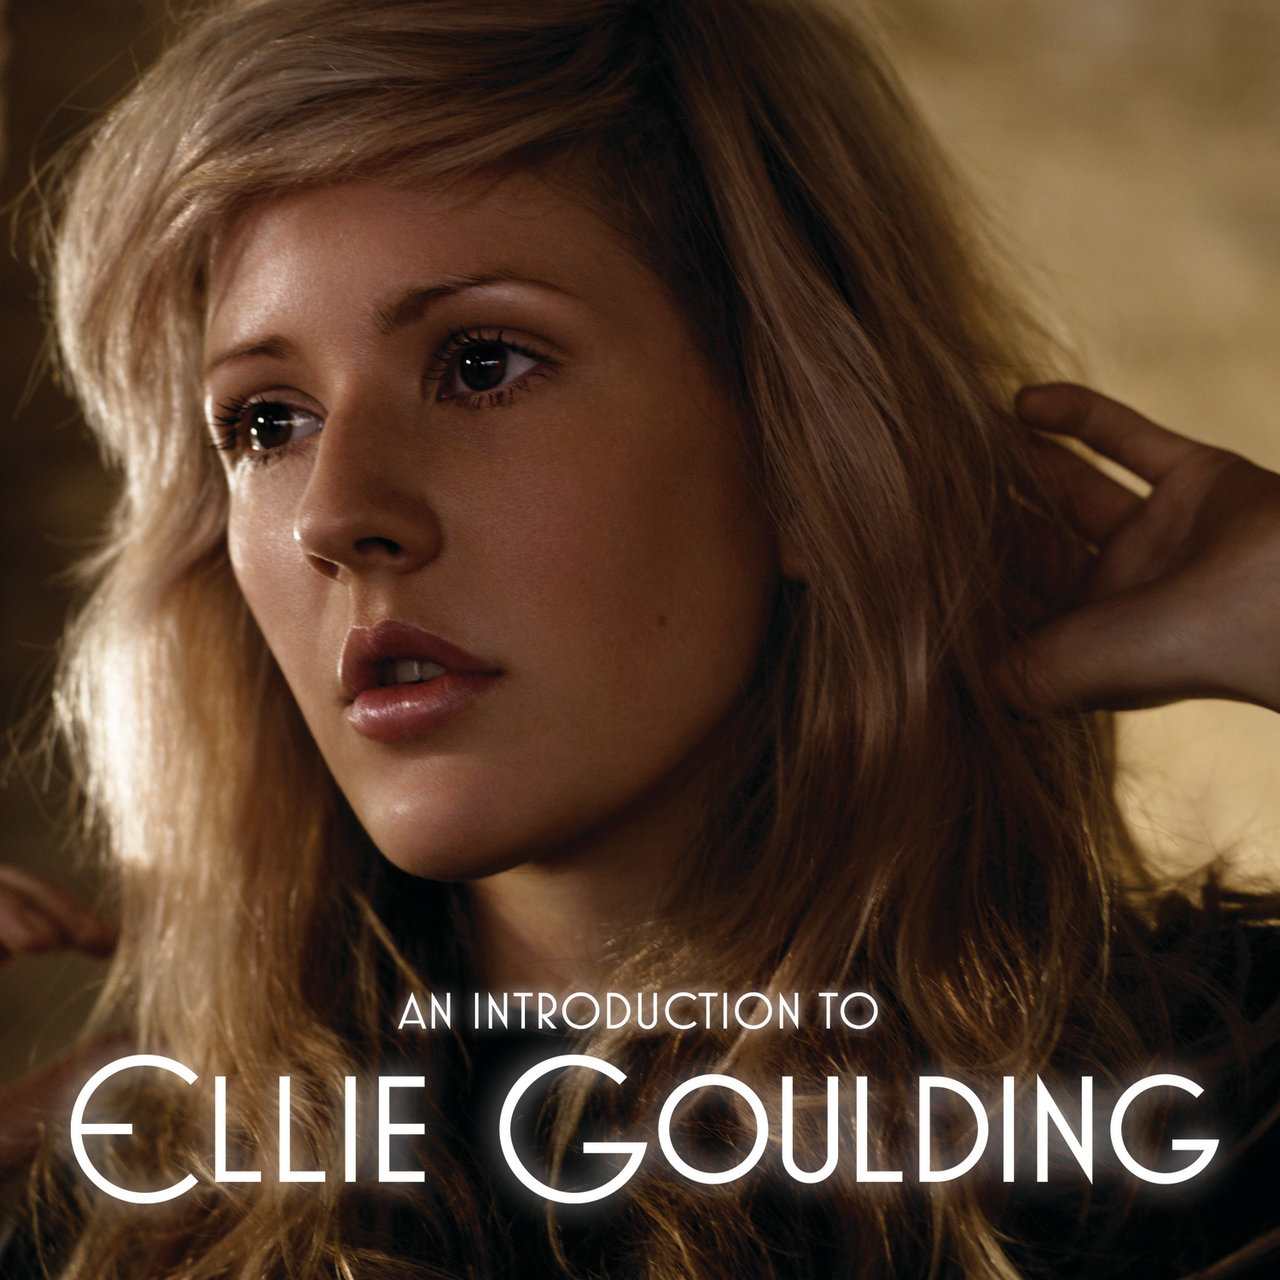 Download Album Ellie Goulding Terbaru Boboiboy